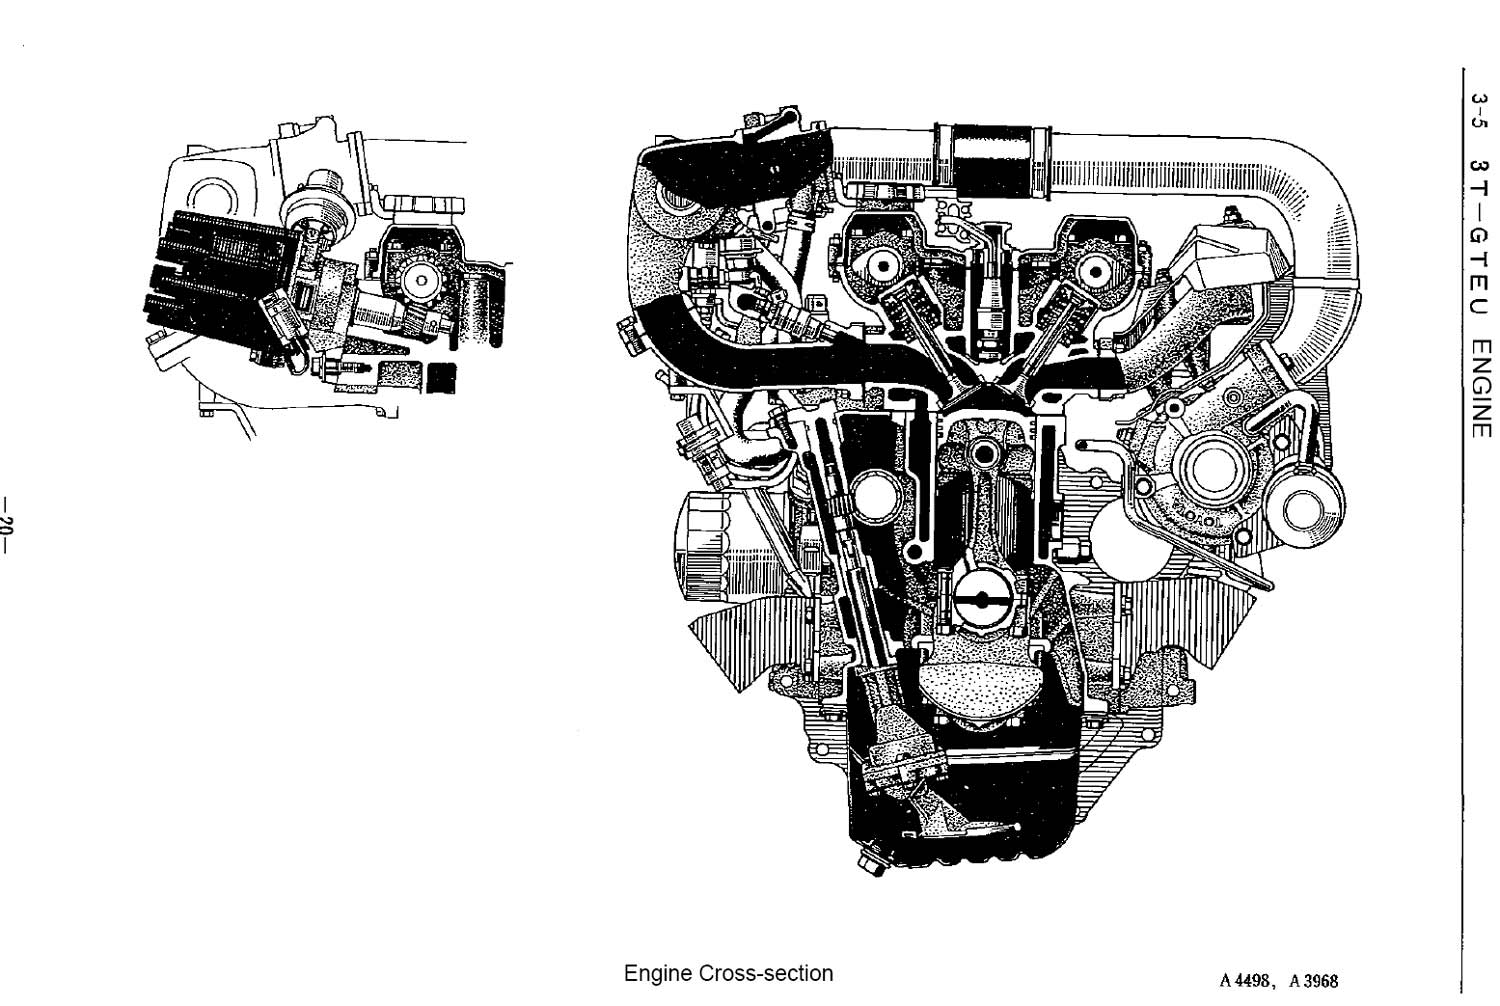 3tgte Technical Documents Inside Engine Repair Info Wanted